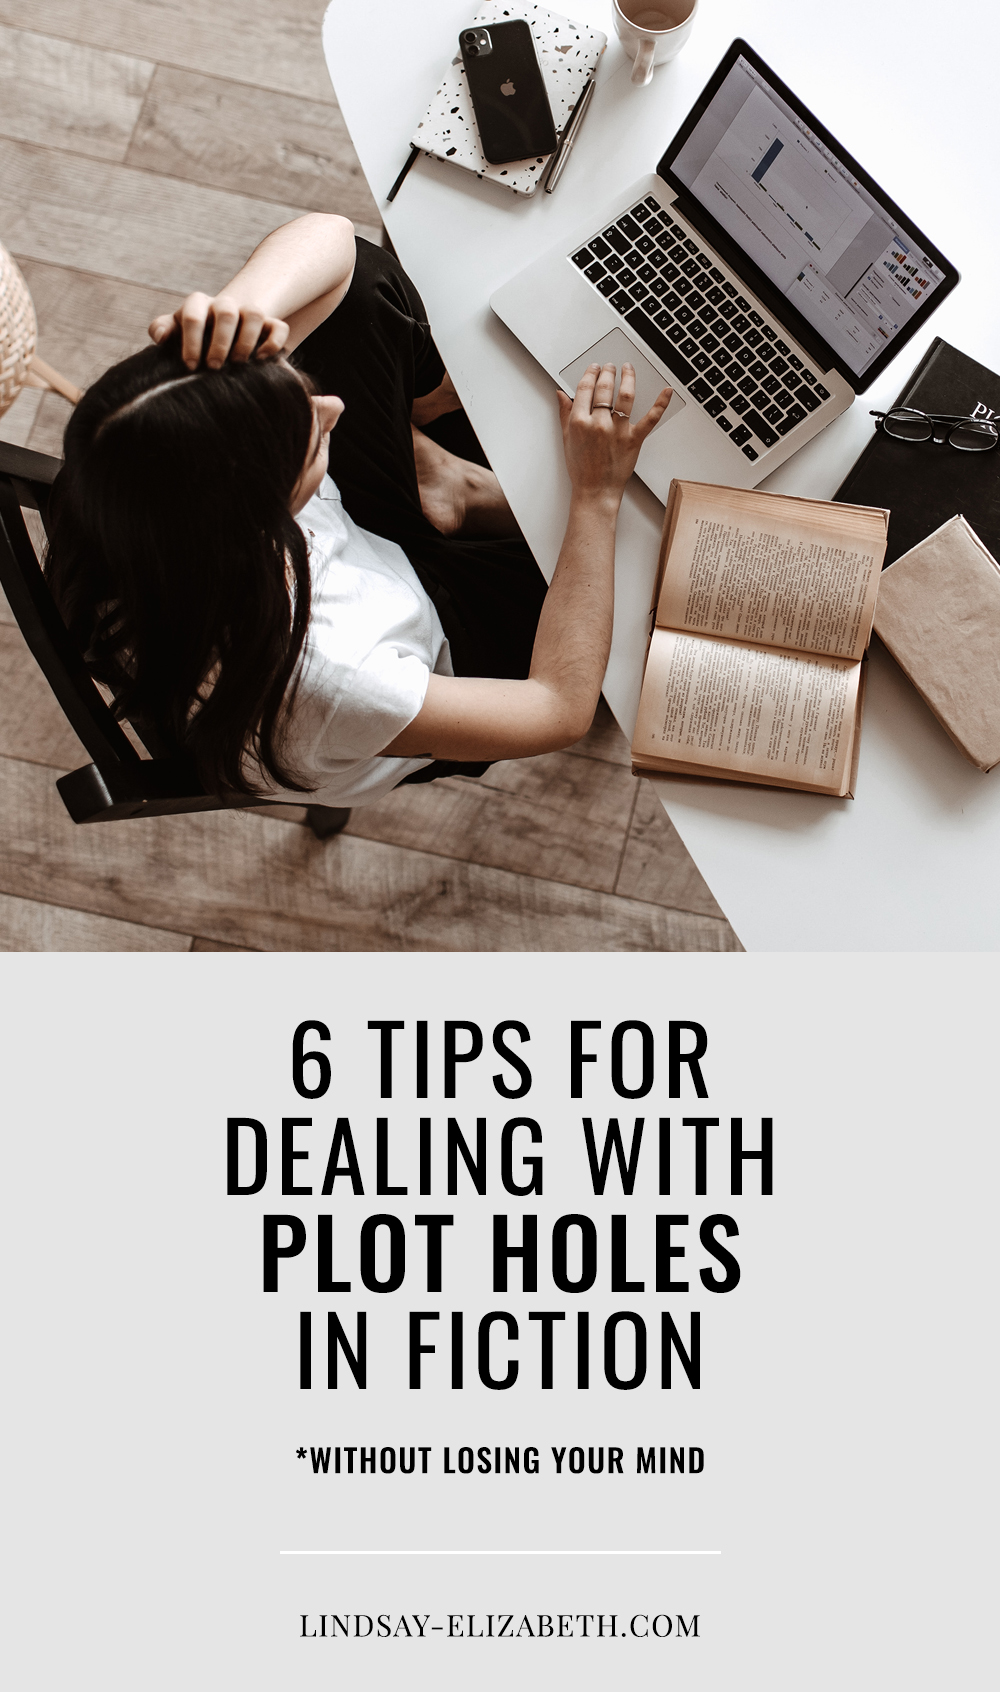 Plot holes are a dreaded but inevitable reality of writing fiction. Every author runs into them in the process of writing a novel at some point or another. Even if it seems impossible at the moment to fix certain ones that seem intent on breaking your story, there is always a way out. Here are some tips on how to deal with plot holes and slay them like a master when they arise. #writinganovel #writingfiction #writingadvice #writingtips #writers #authors